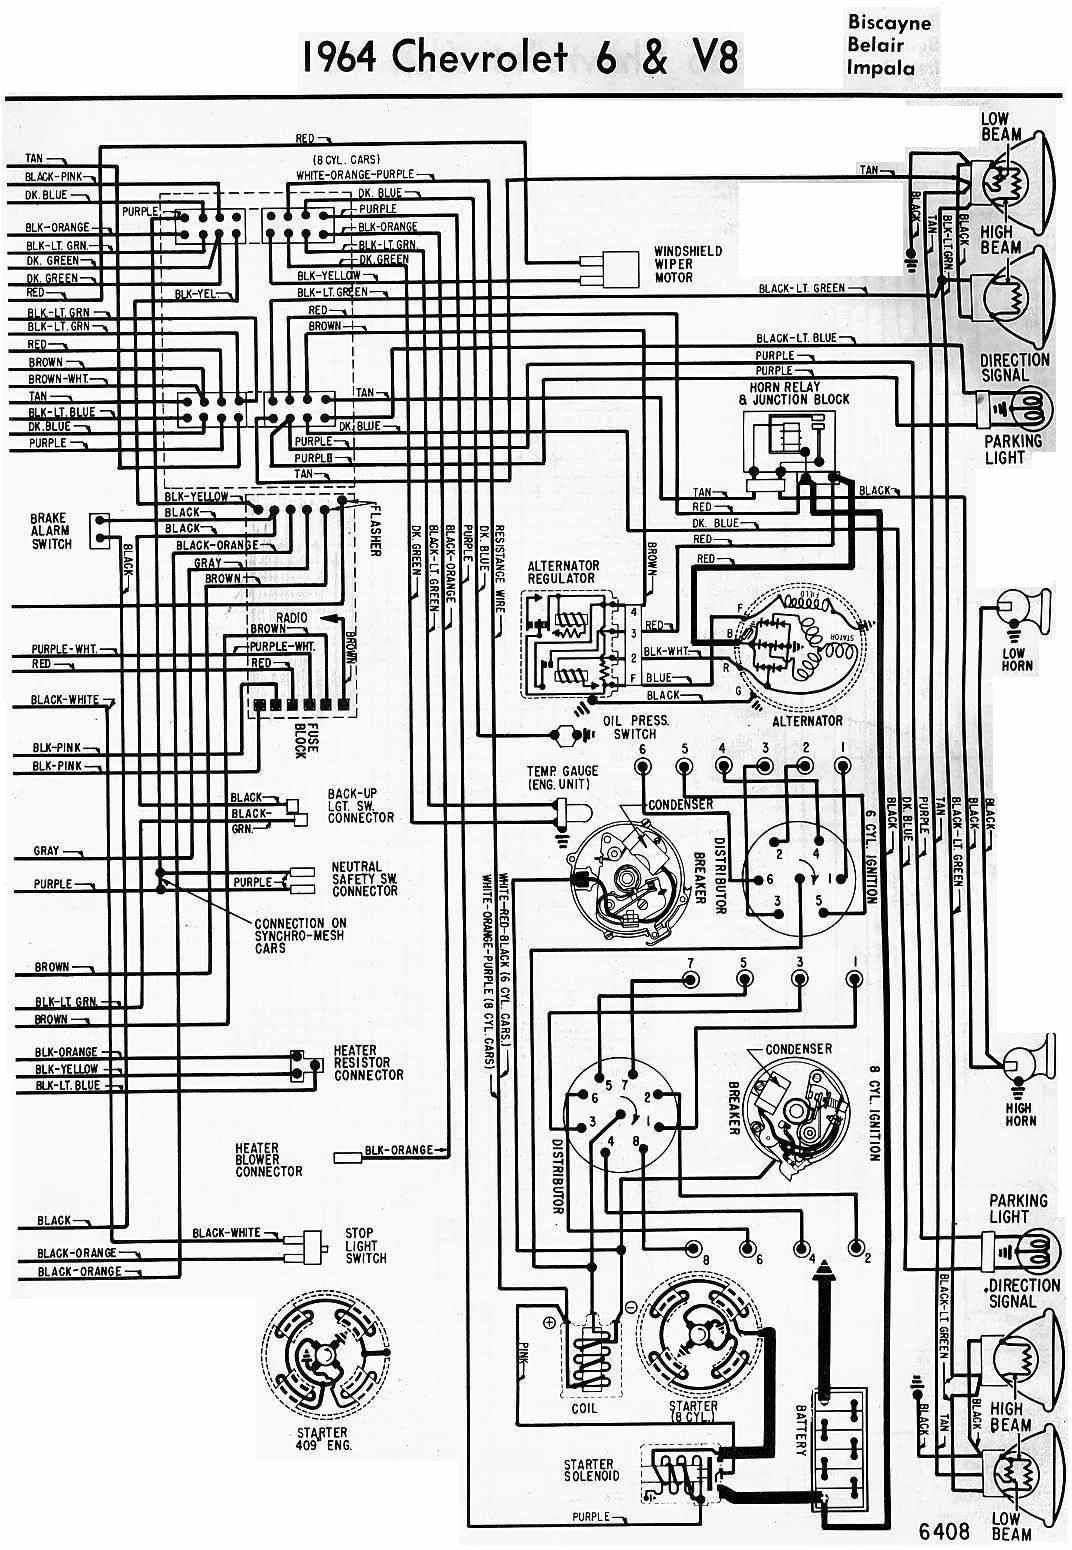 small resolution of electrical wiring diagram of 1964 chevrolet 6 and v8 all